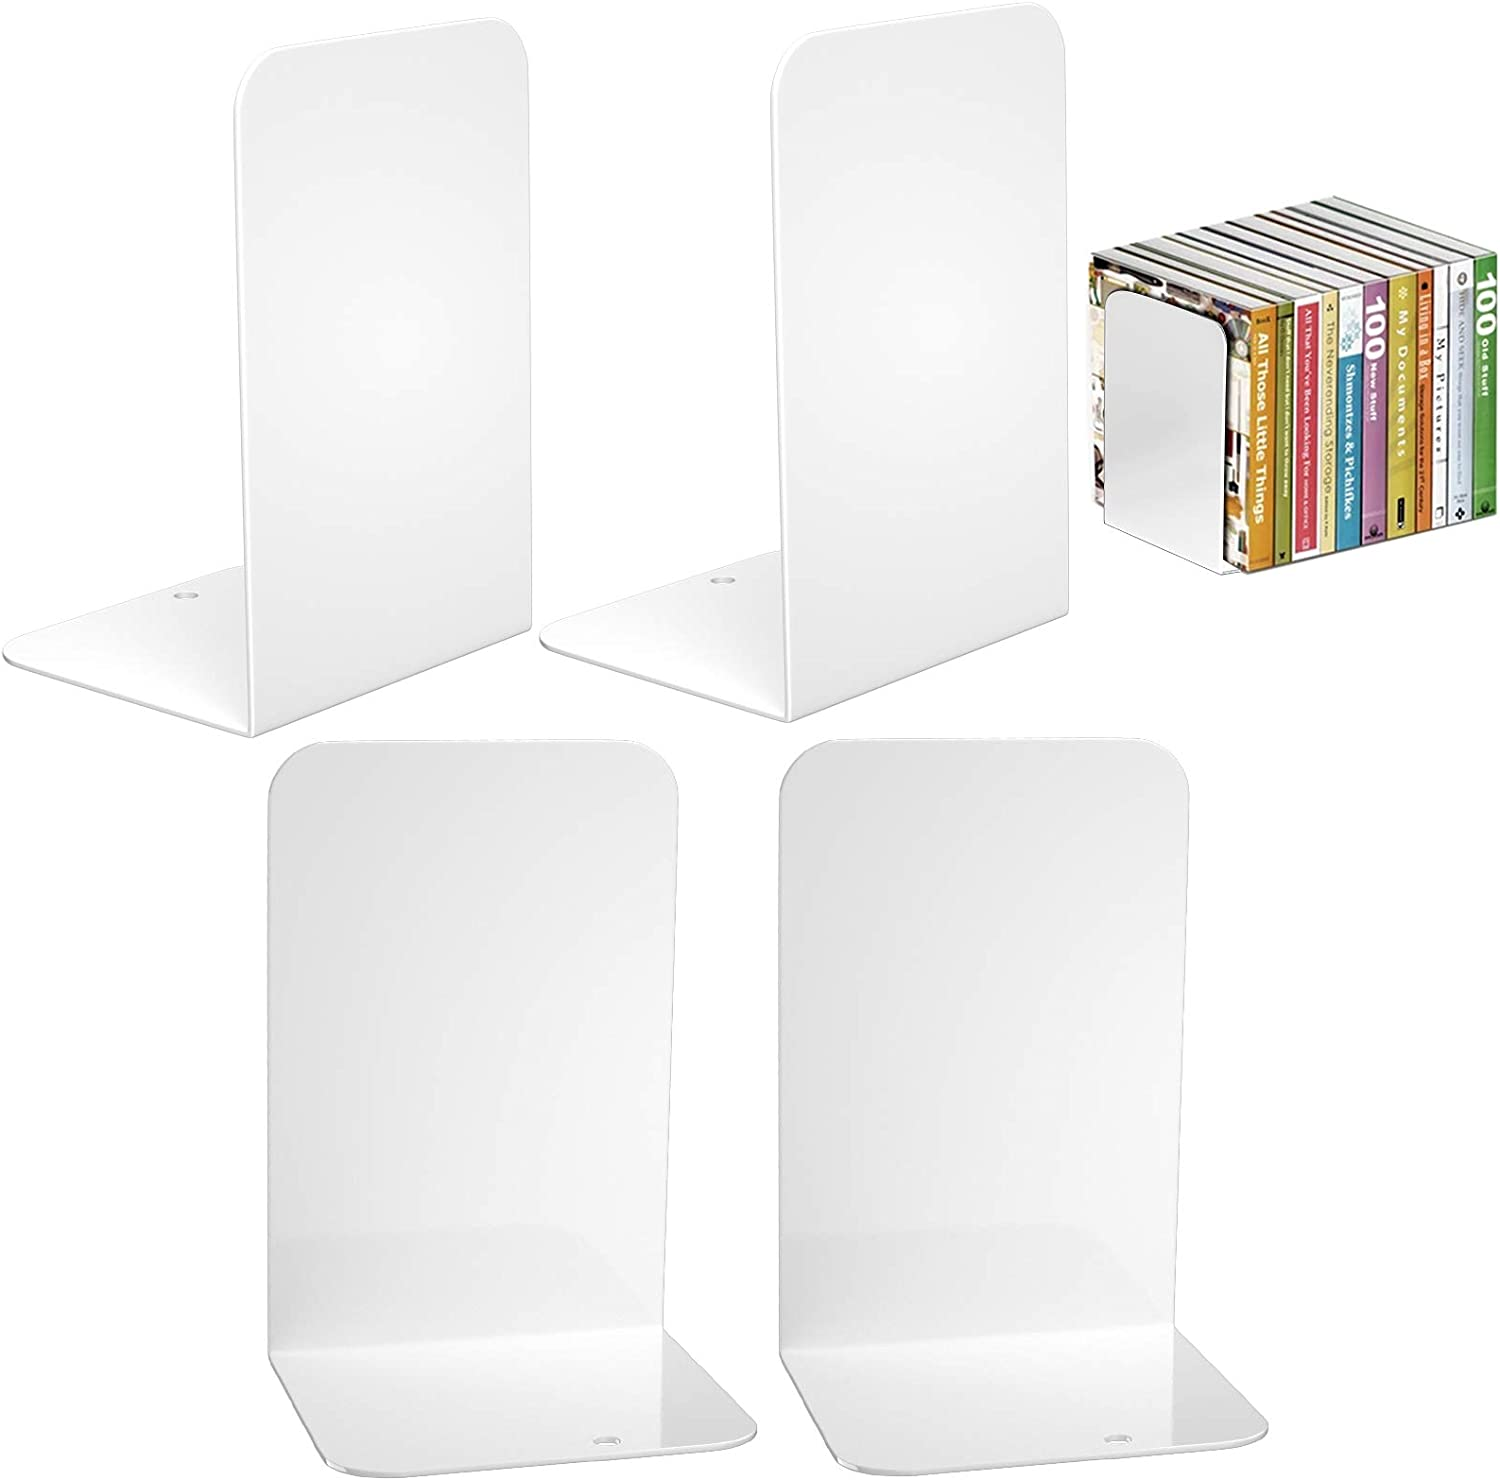 VFINE Book Translated Ends 2021 Premium Bookends Metal for White Shelves E